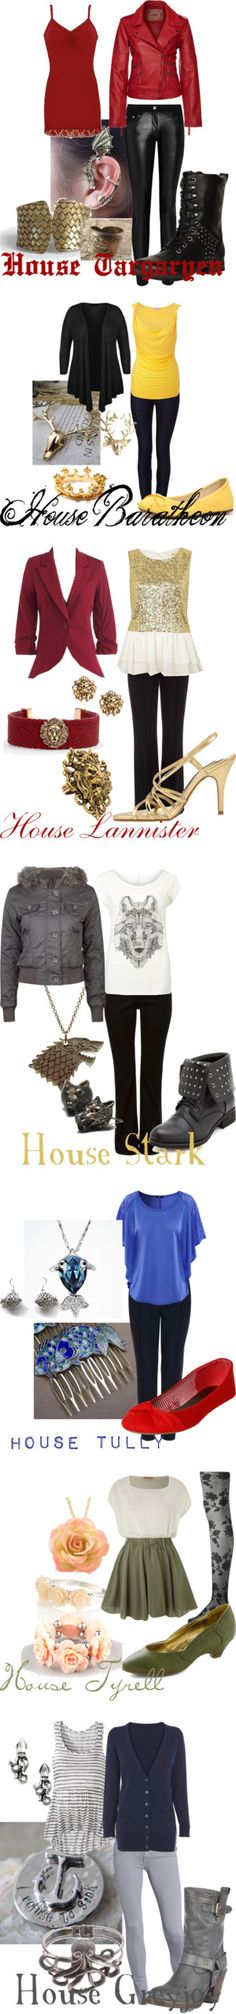 """""""Game of Thrones"""" by ashley-jo-verity on Polyvore"""